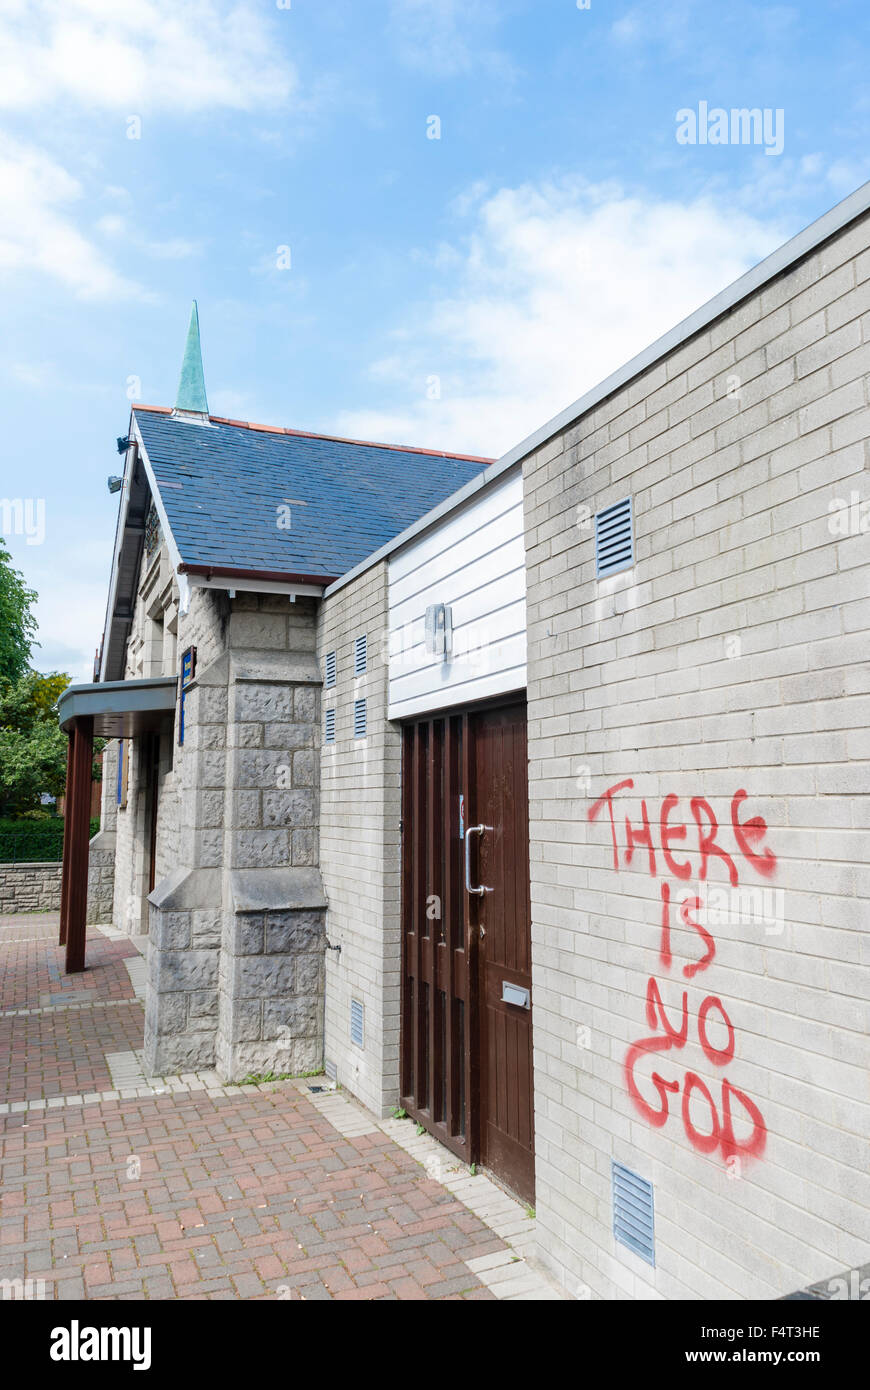 There is no god graffiti on the wall of a church stock